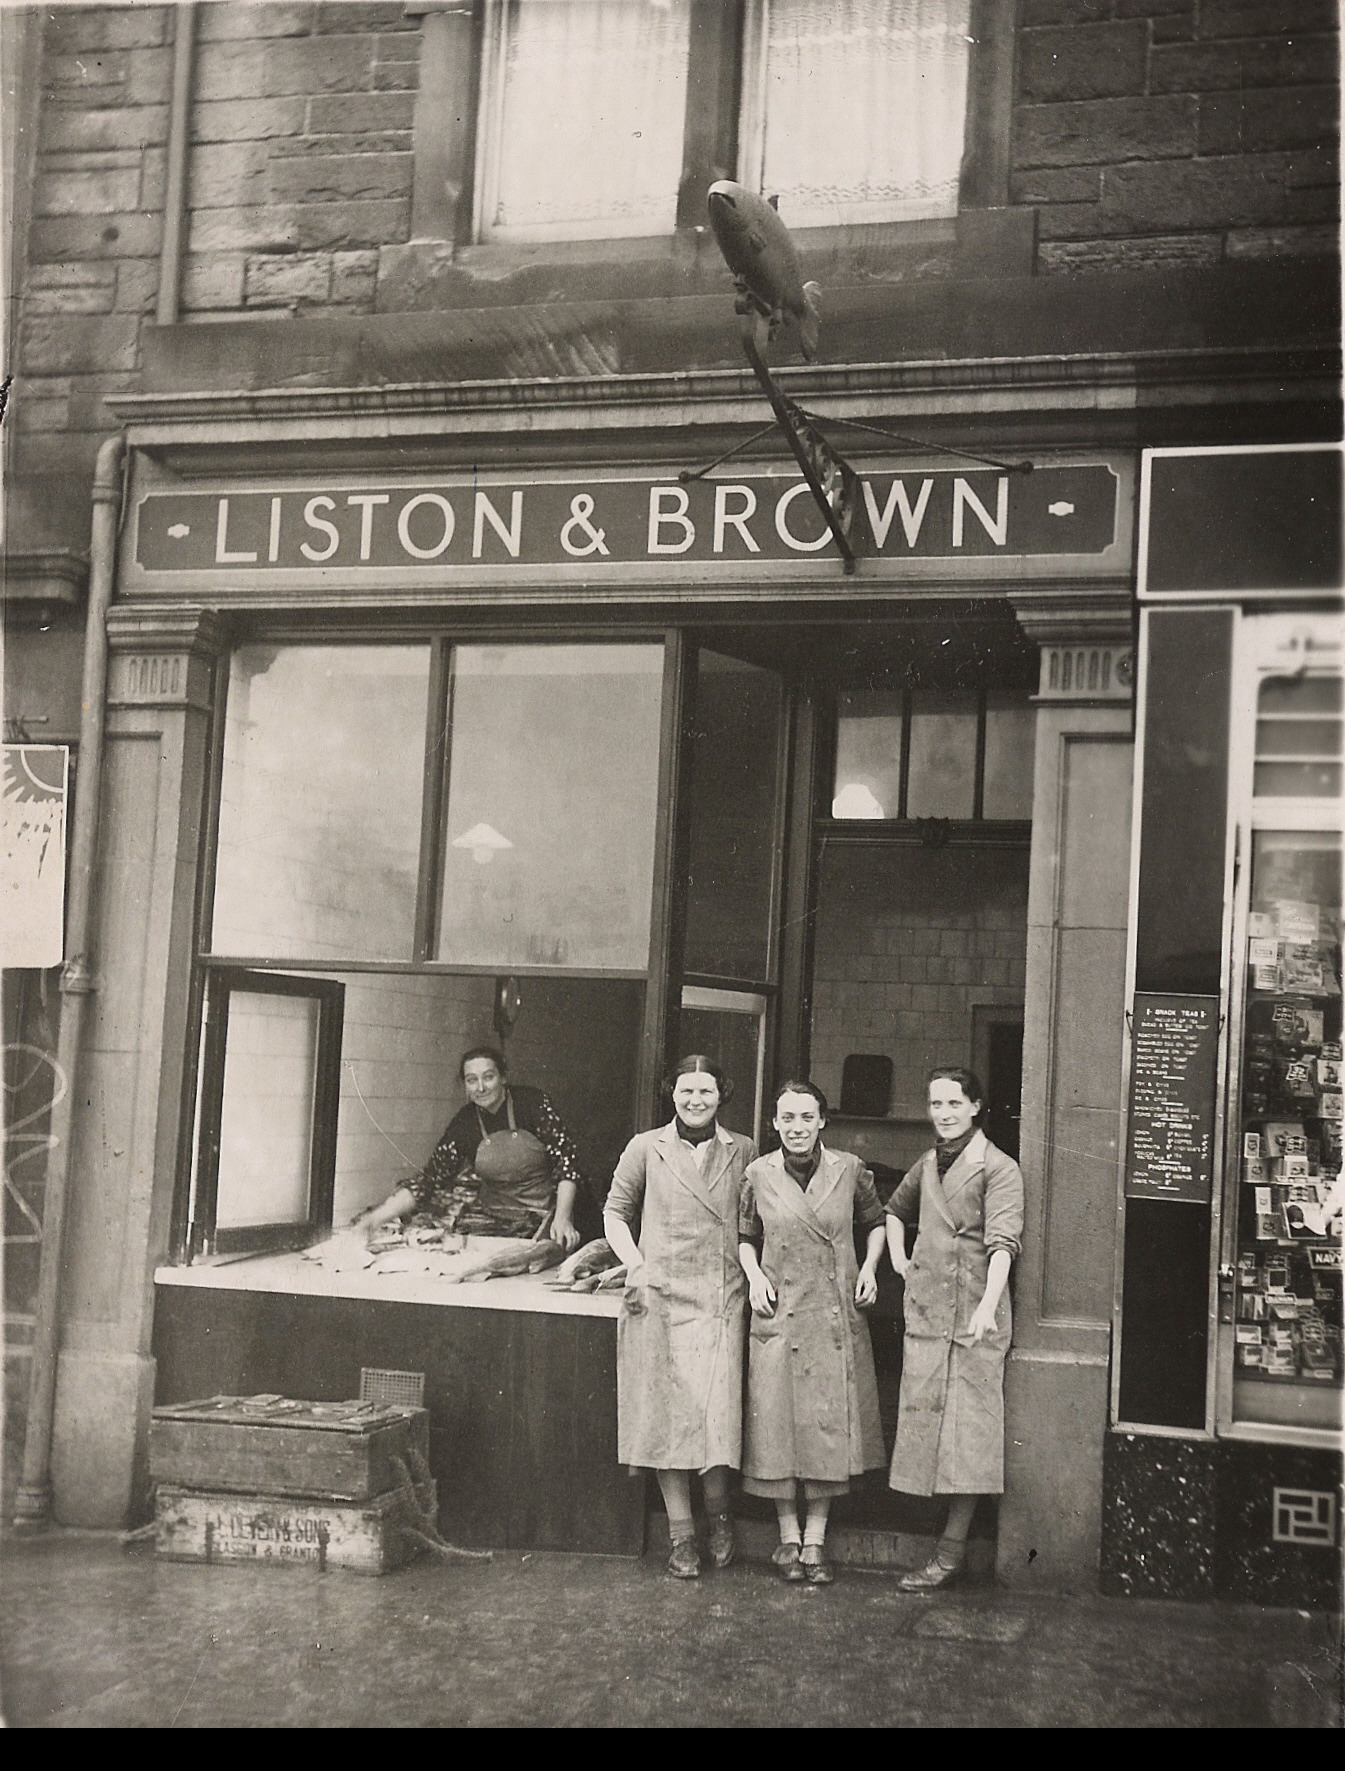 Liston & Brown Fishmongers